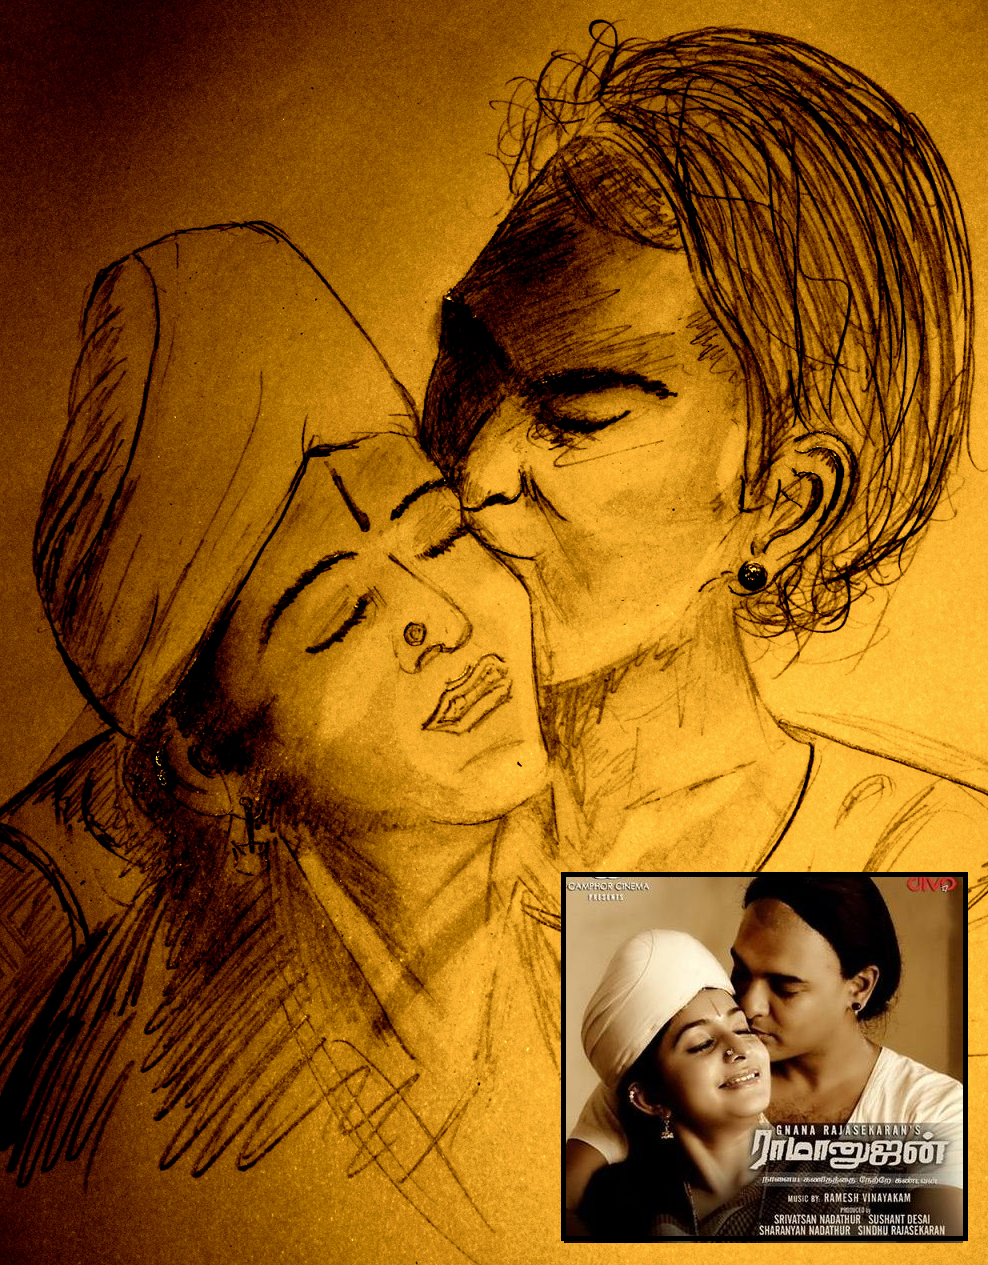 Pencil sketch of abhinay vaddi and bhama in ramanujan movie ராமானுஜன் படத்தி